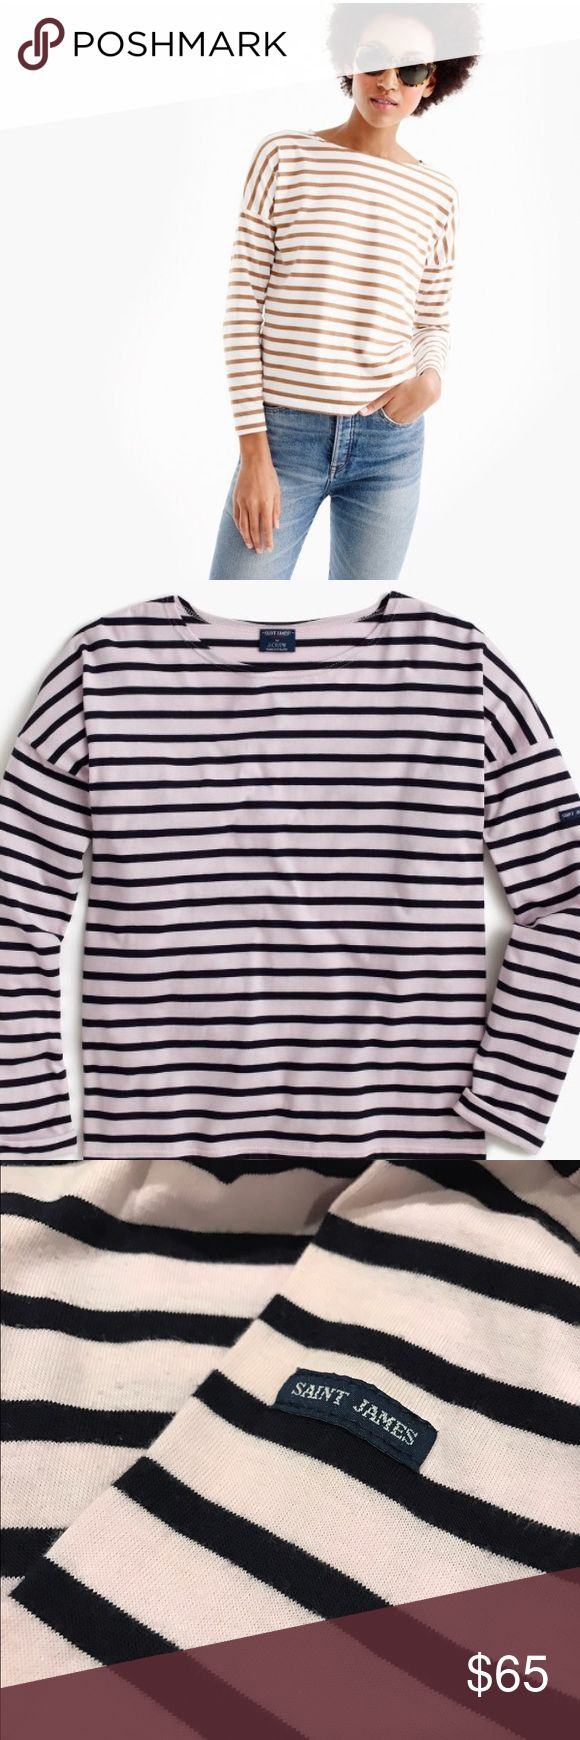 Saint James® for J.Crew slouchy T-shirt PRODUCT DETAILS Saint James has been spinning some of the world's finest knits out of its Normandy-based factory since 1889 and has become famous for its Breton shirt, a nautical-inspired style featuring classic stripes. Designed exclusively for us, this airy cotton version features a roomy body and slimmer sleeves. Tour the Saint James factory. Color is lilac and white  Cotton. Machine wash. Made in France. Select stores. Item A1931. J. Crew Tops Tees…